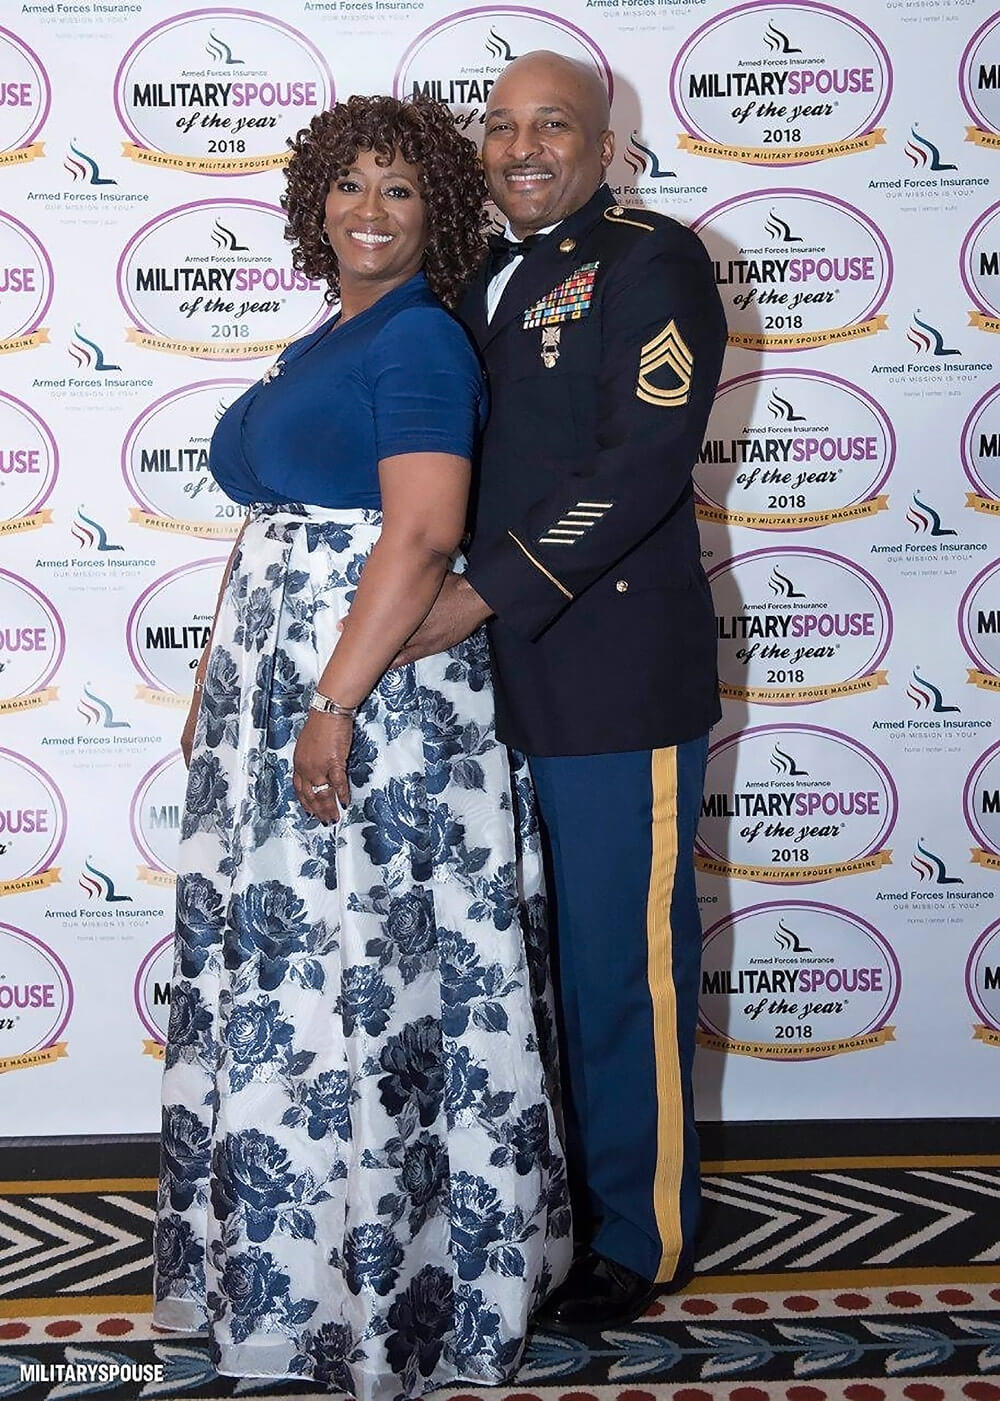 Kentucky National Guard Wife Wins National Guard Spouse of